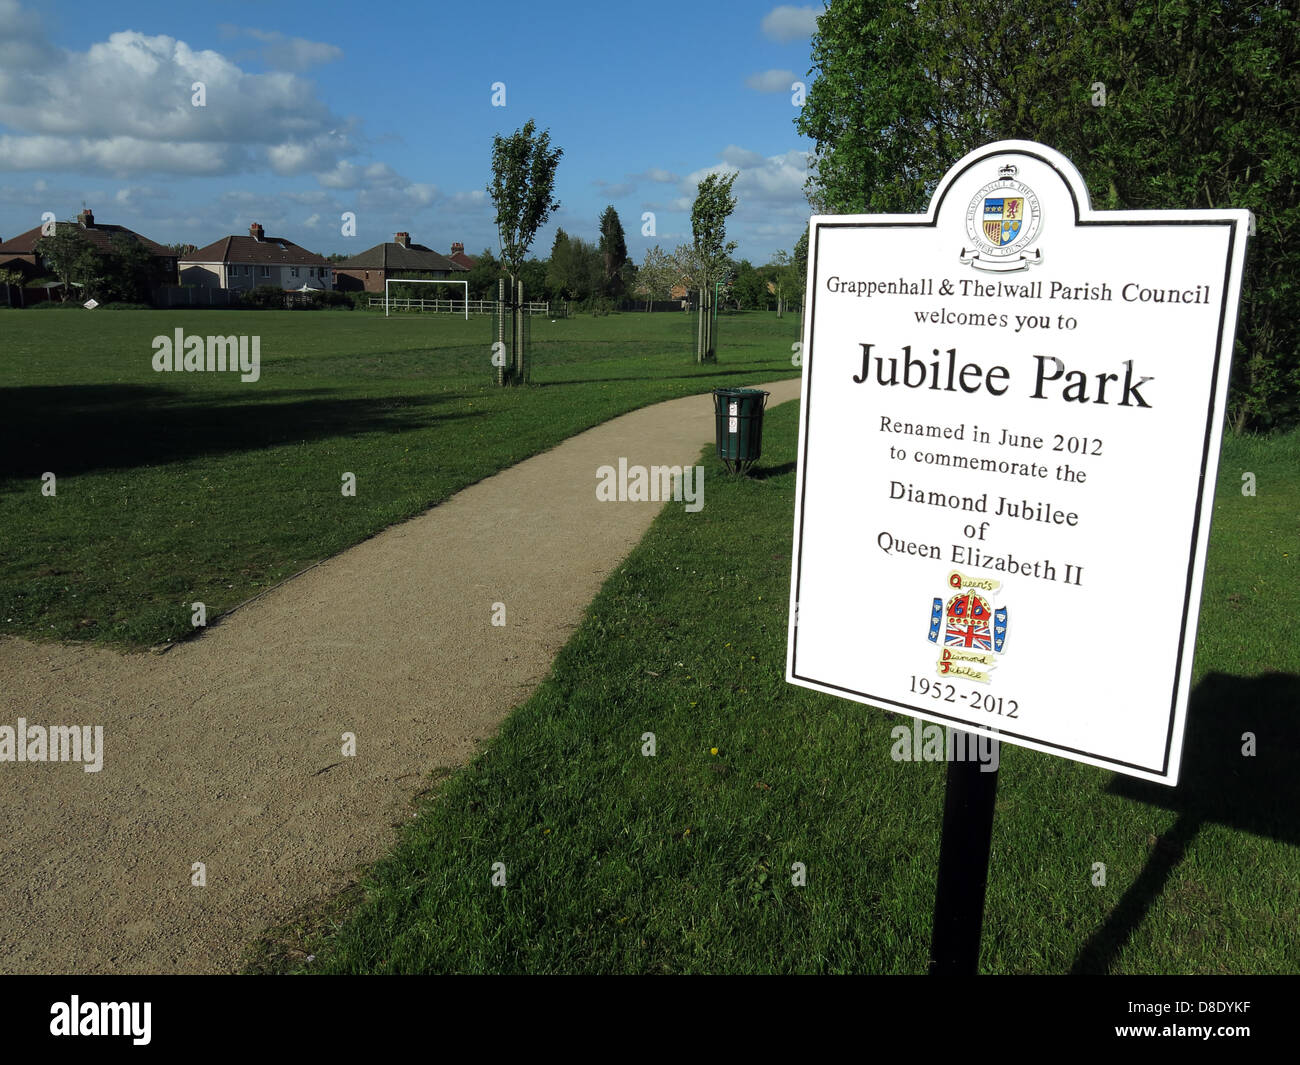 Grappenhall & Thelwall parish council Jubilee Park renamed 2012 Queen Elizabeth diamond jubilee year - Stock Image